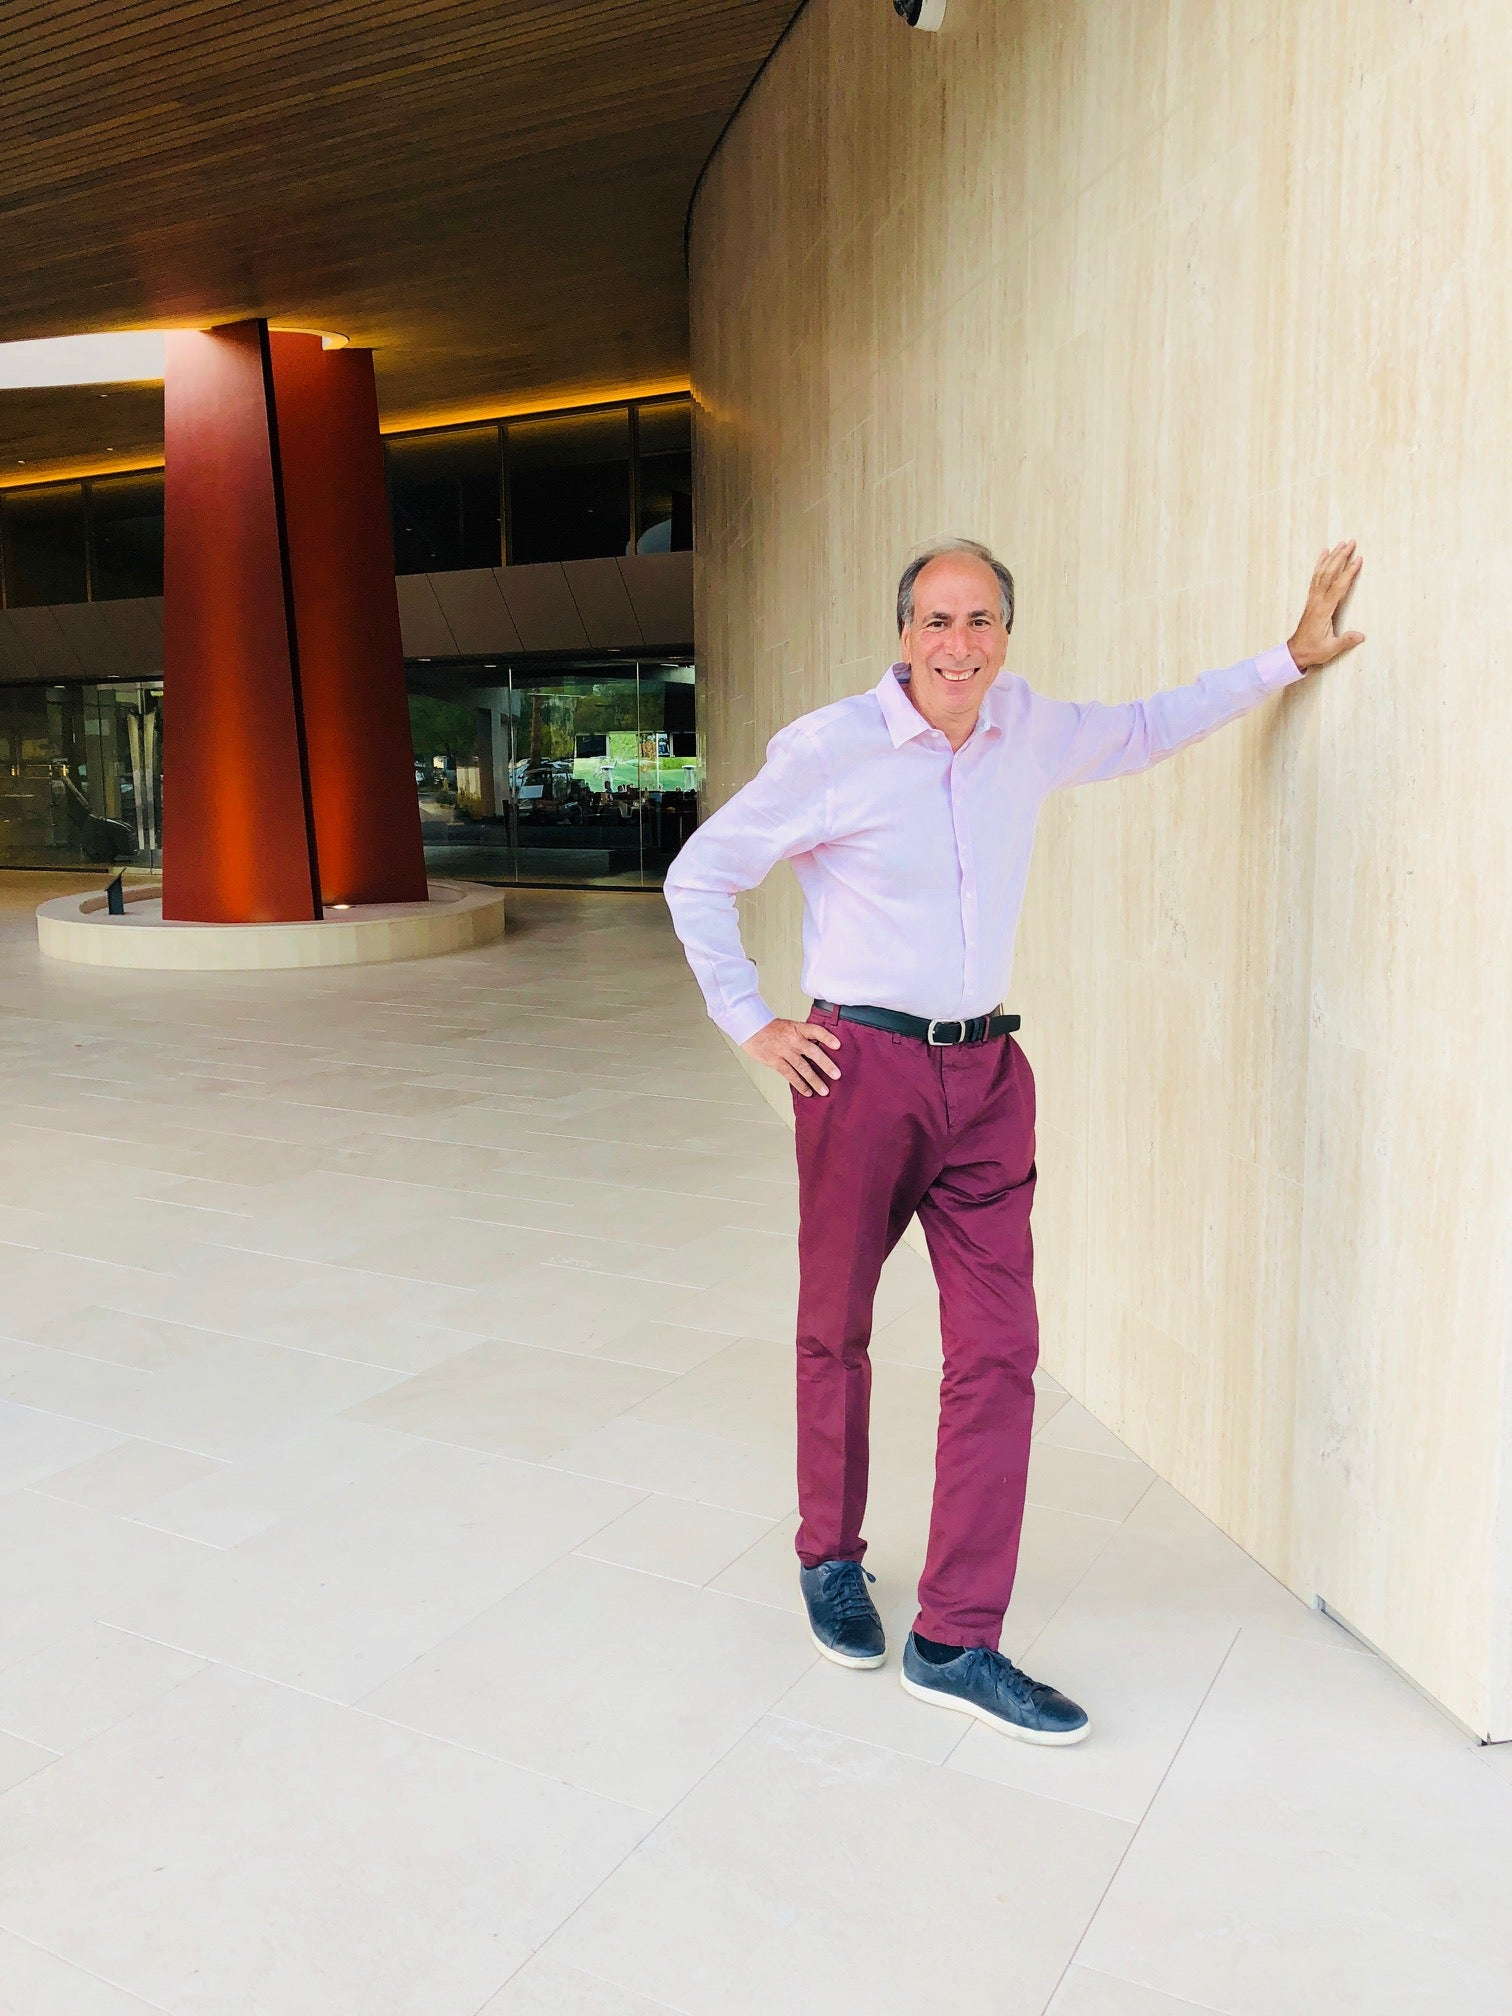 An older guy standing next to the wall wearing a shirt and pink trousers after hiring a stylist